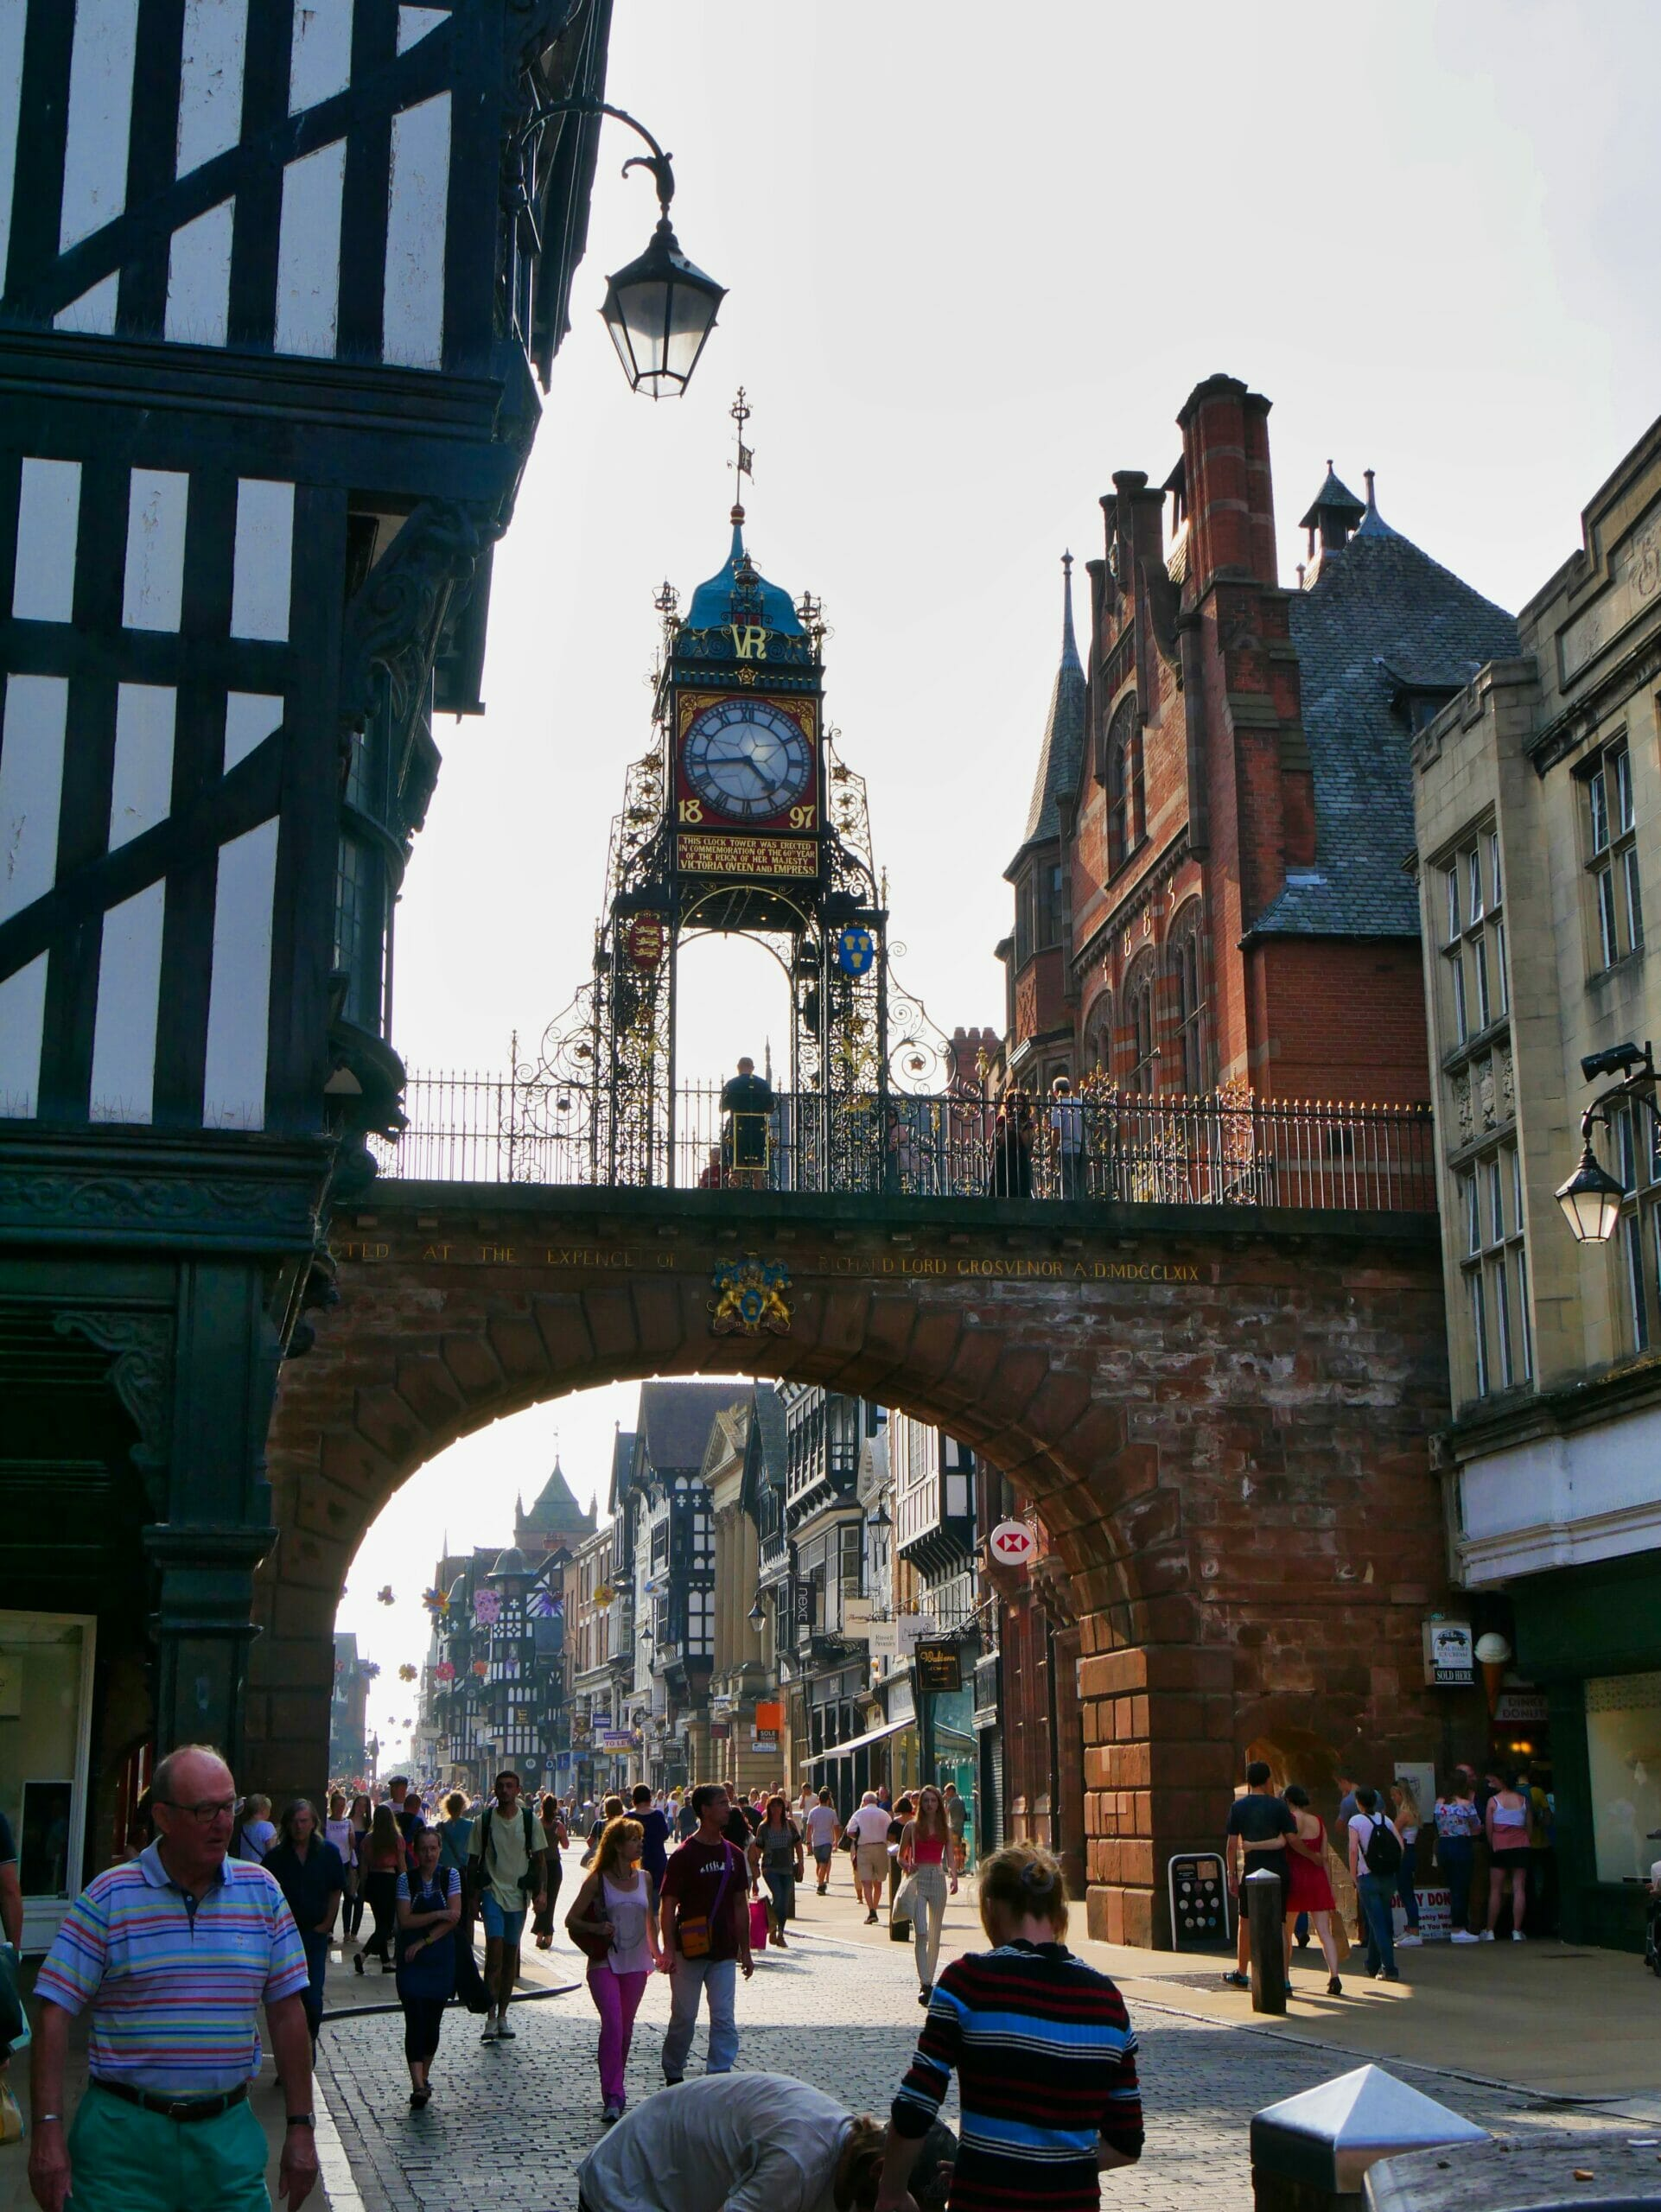 Chester High Street with an old, ornate clock on top of a bridge